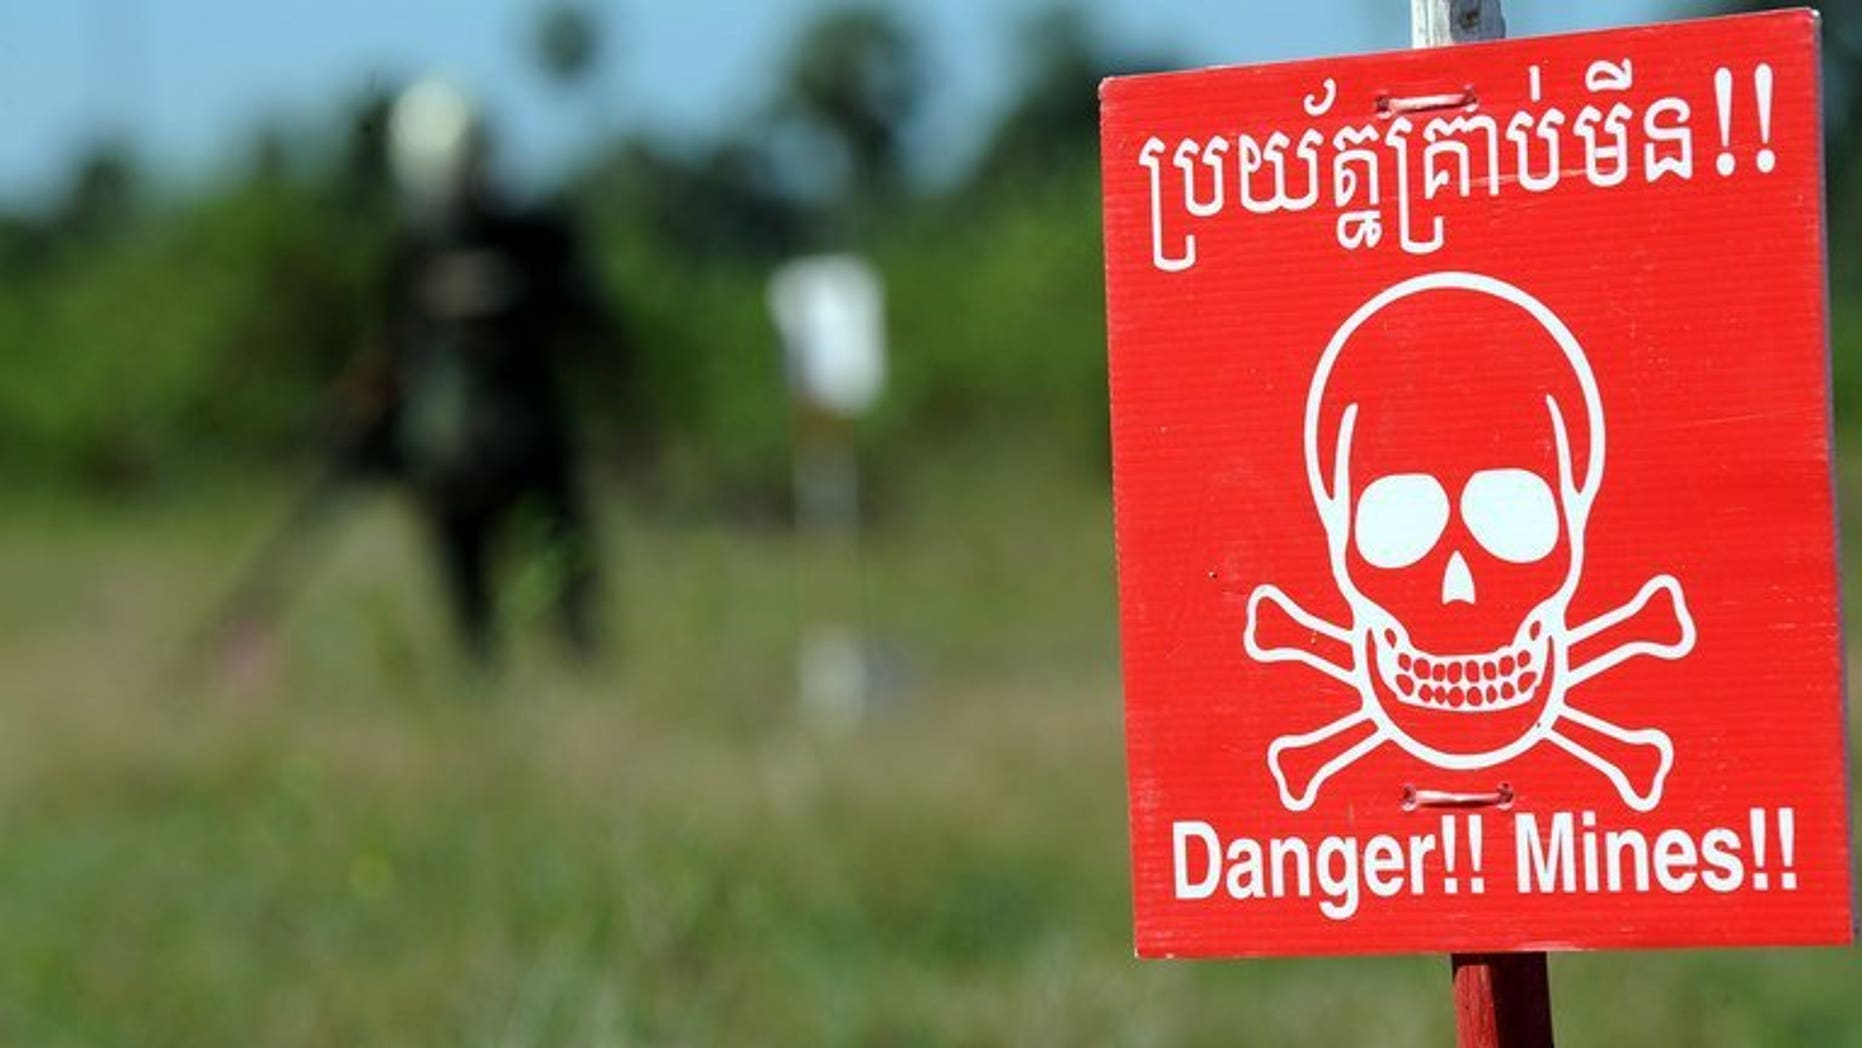 In this file photo, a deminer scans for mines at the Training and Mine Unexploded Ordnance Clearance Center in Oudong, some 40 km north of Phnom Penh, on November 27, 2011. Six Cambodian farmers were killed when their truck on Wednesday hit an old anti-tank mine planted by Khmer Rouge guerrillas during the country's civil war.